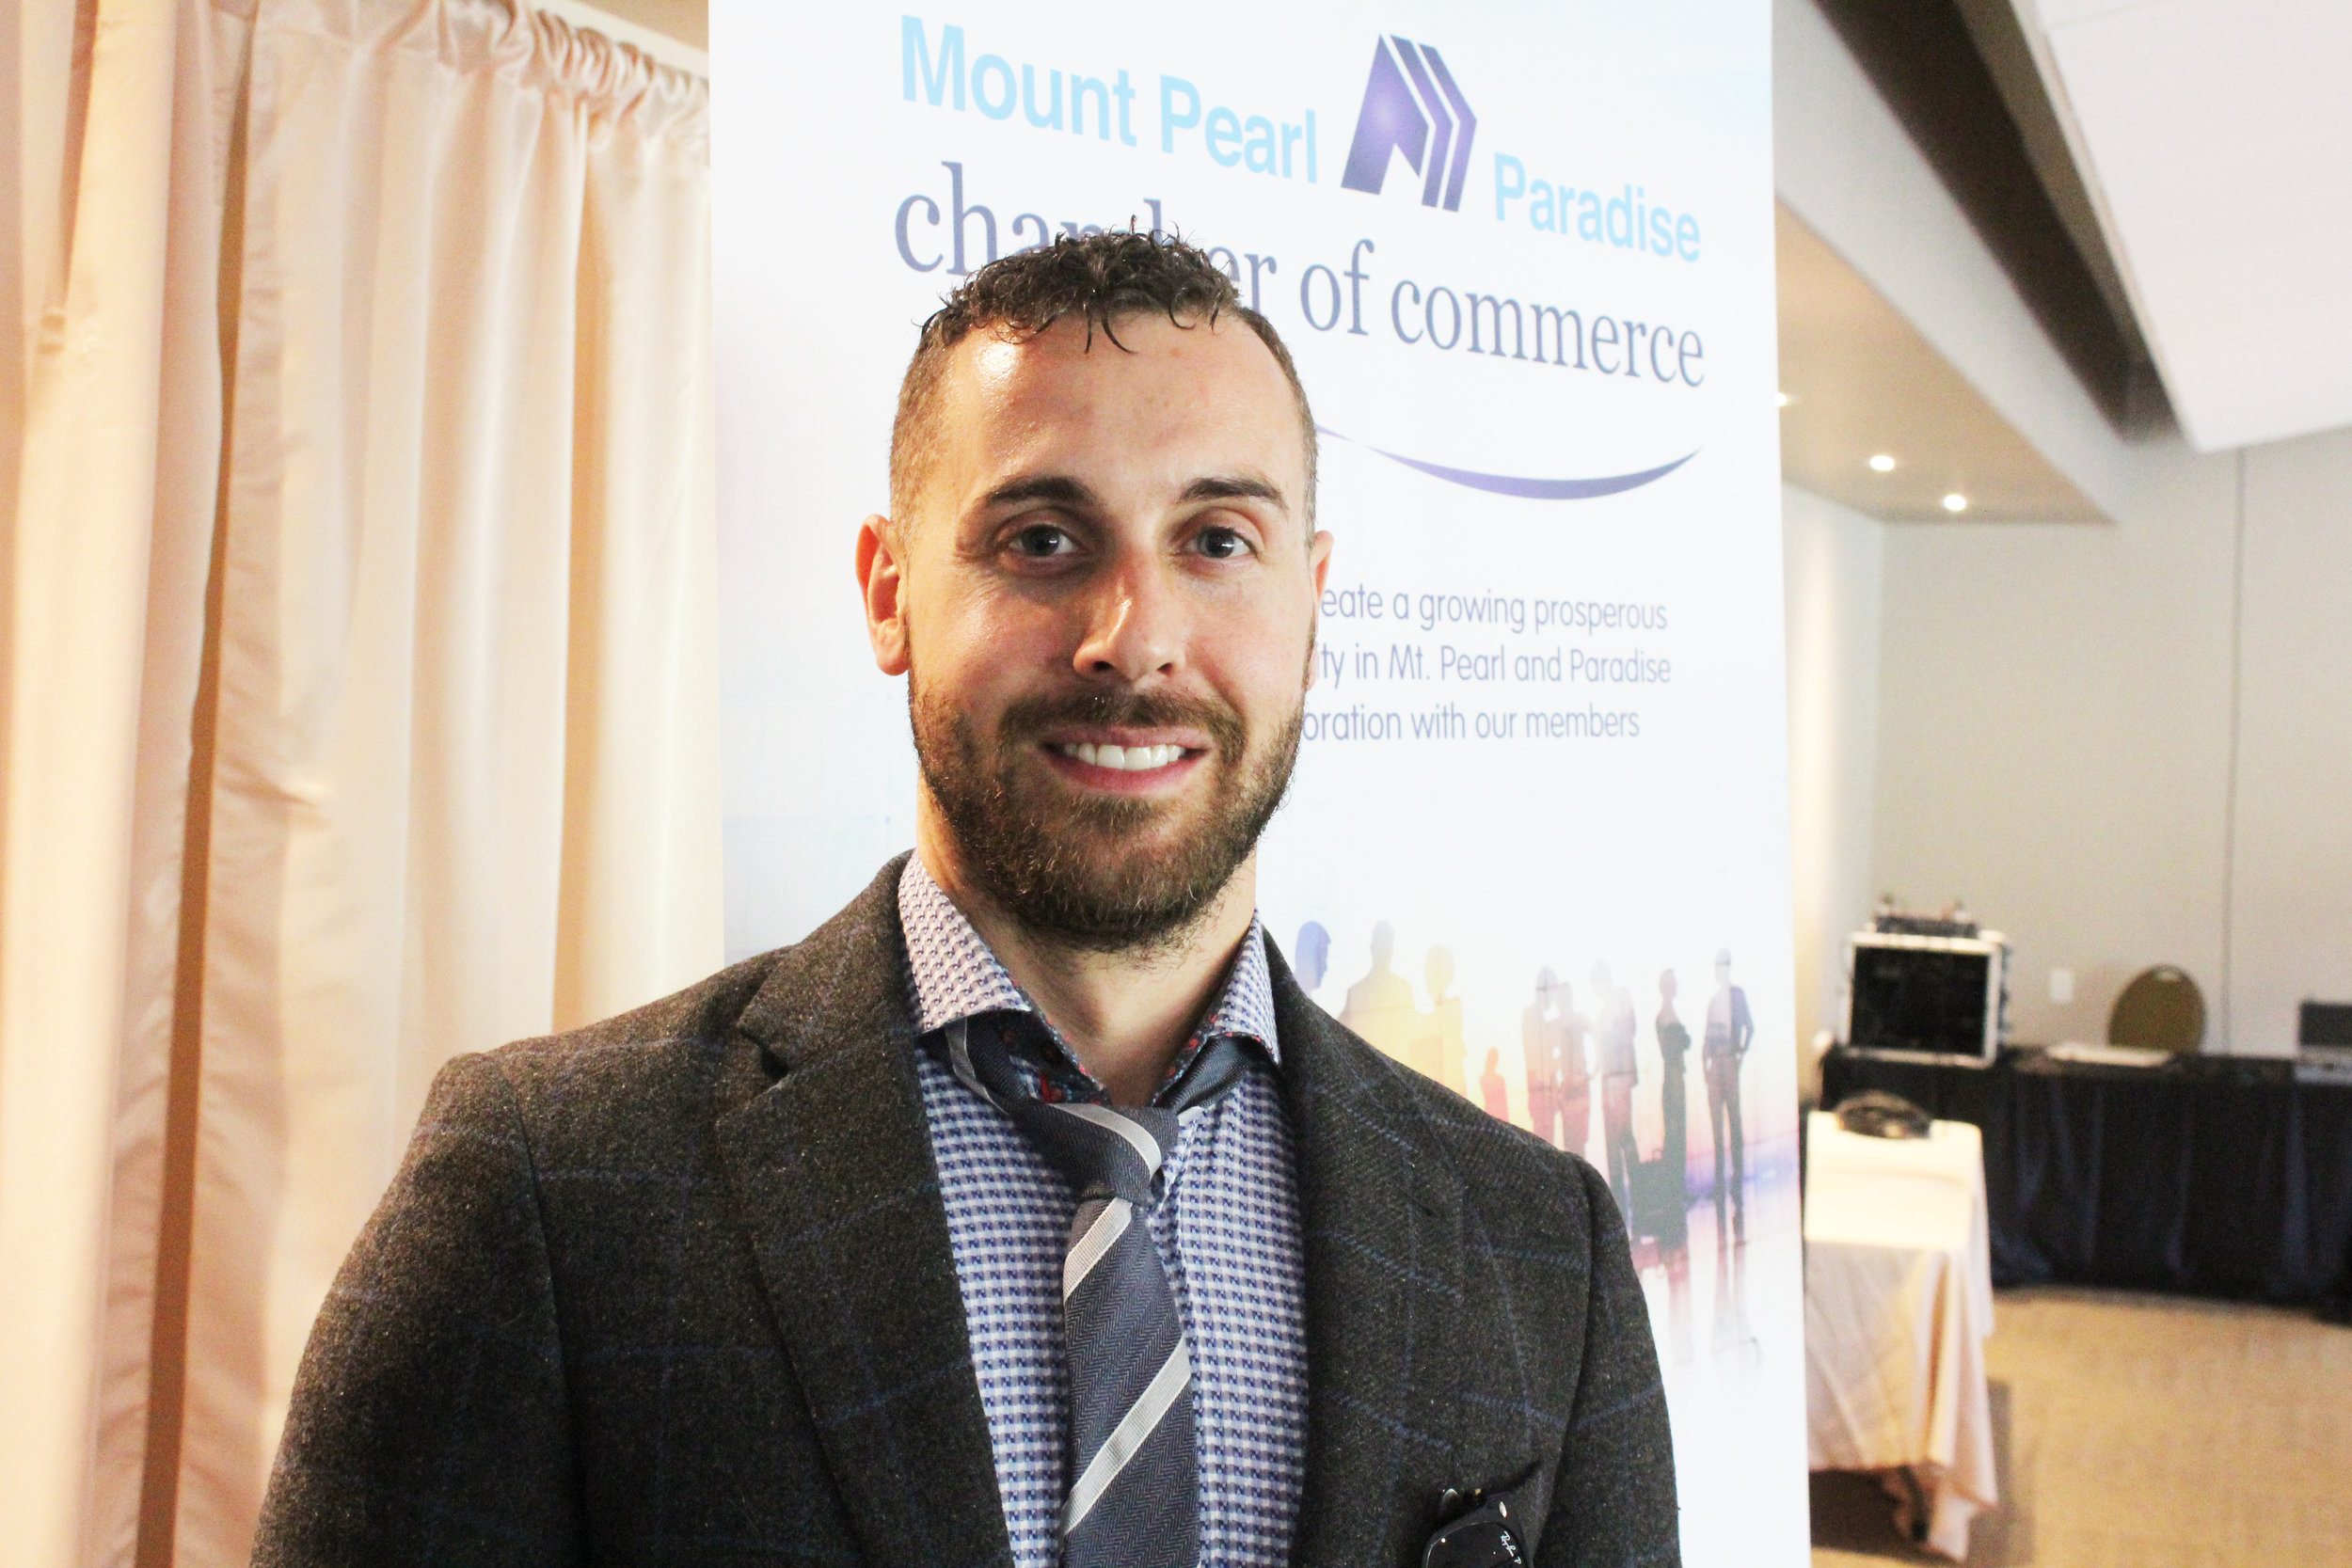 John Norman, Mayor of Bonavista, took some time to speak to the Mount Pearl/Paradise Chamber of Commerce about the economic development in his community, which has seen something of a revival in recent years after suffering economically following the cod moratorium of 1992.